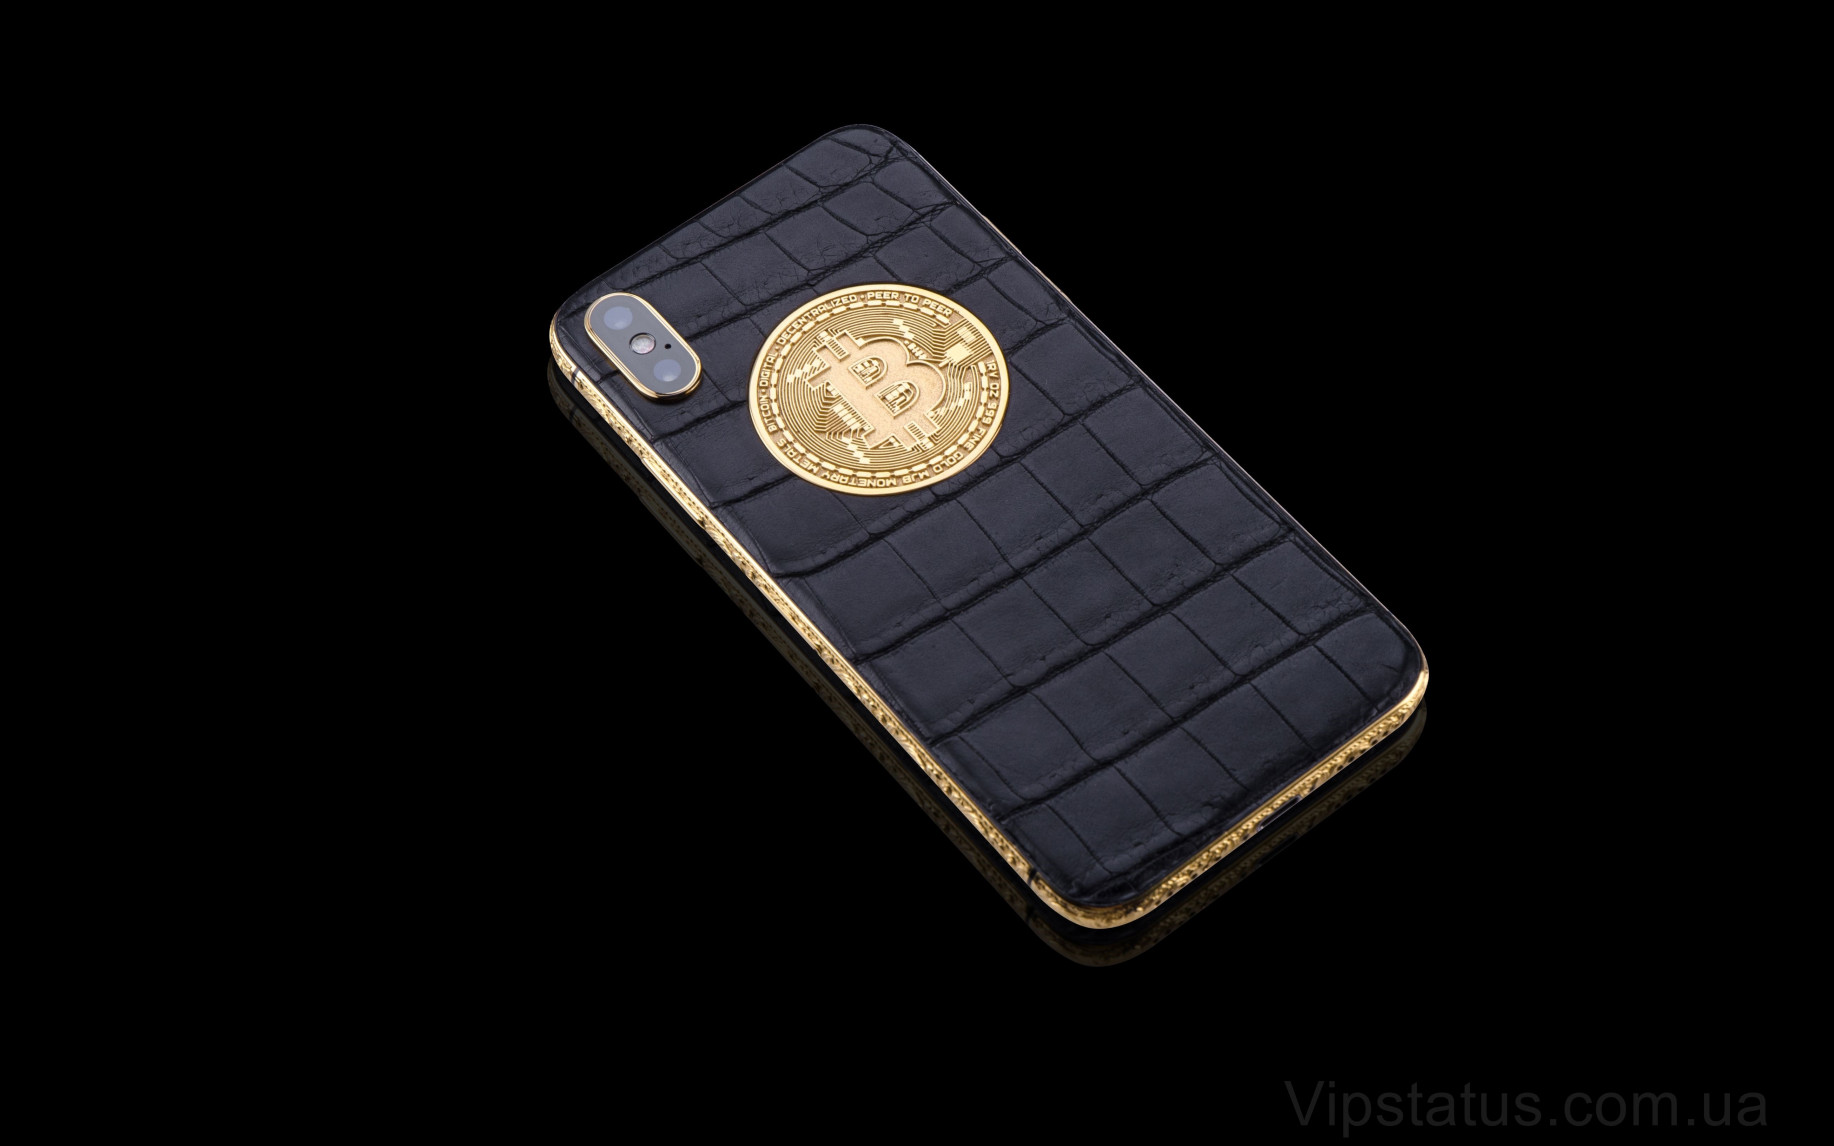 Elite Great Bitcoin IPHONE 11 PRO MAX 512 GB Great Bitcoin IPHONE 11 PRO MAX 512 GB image 5